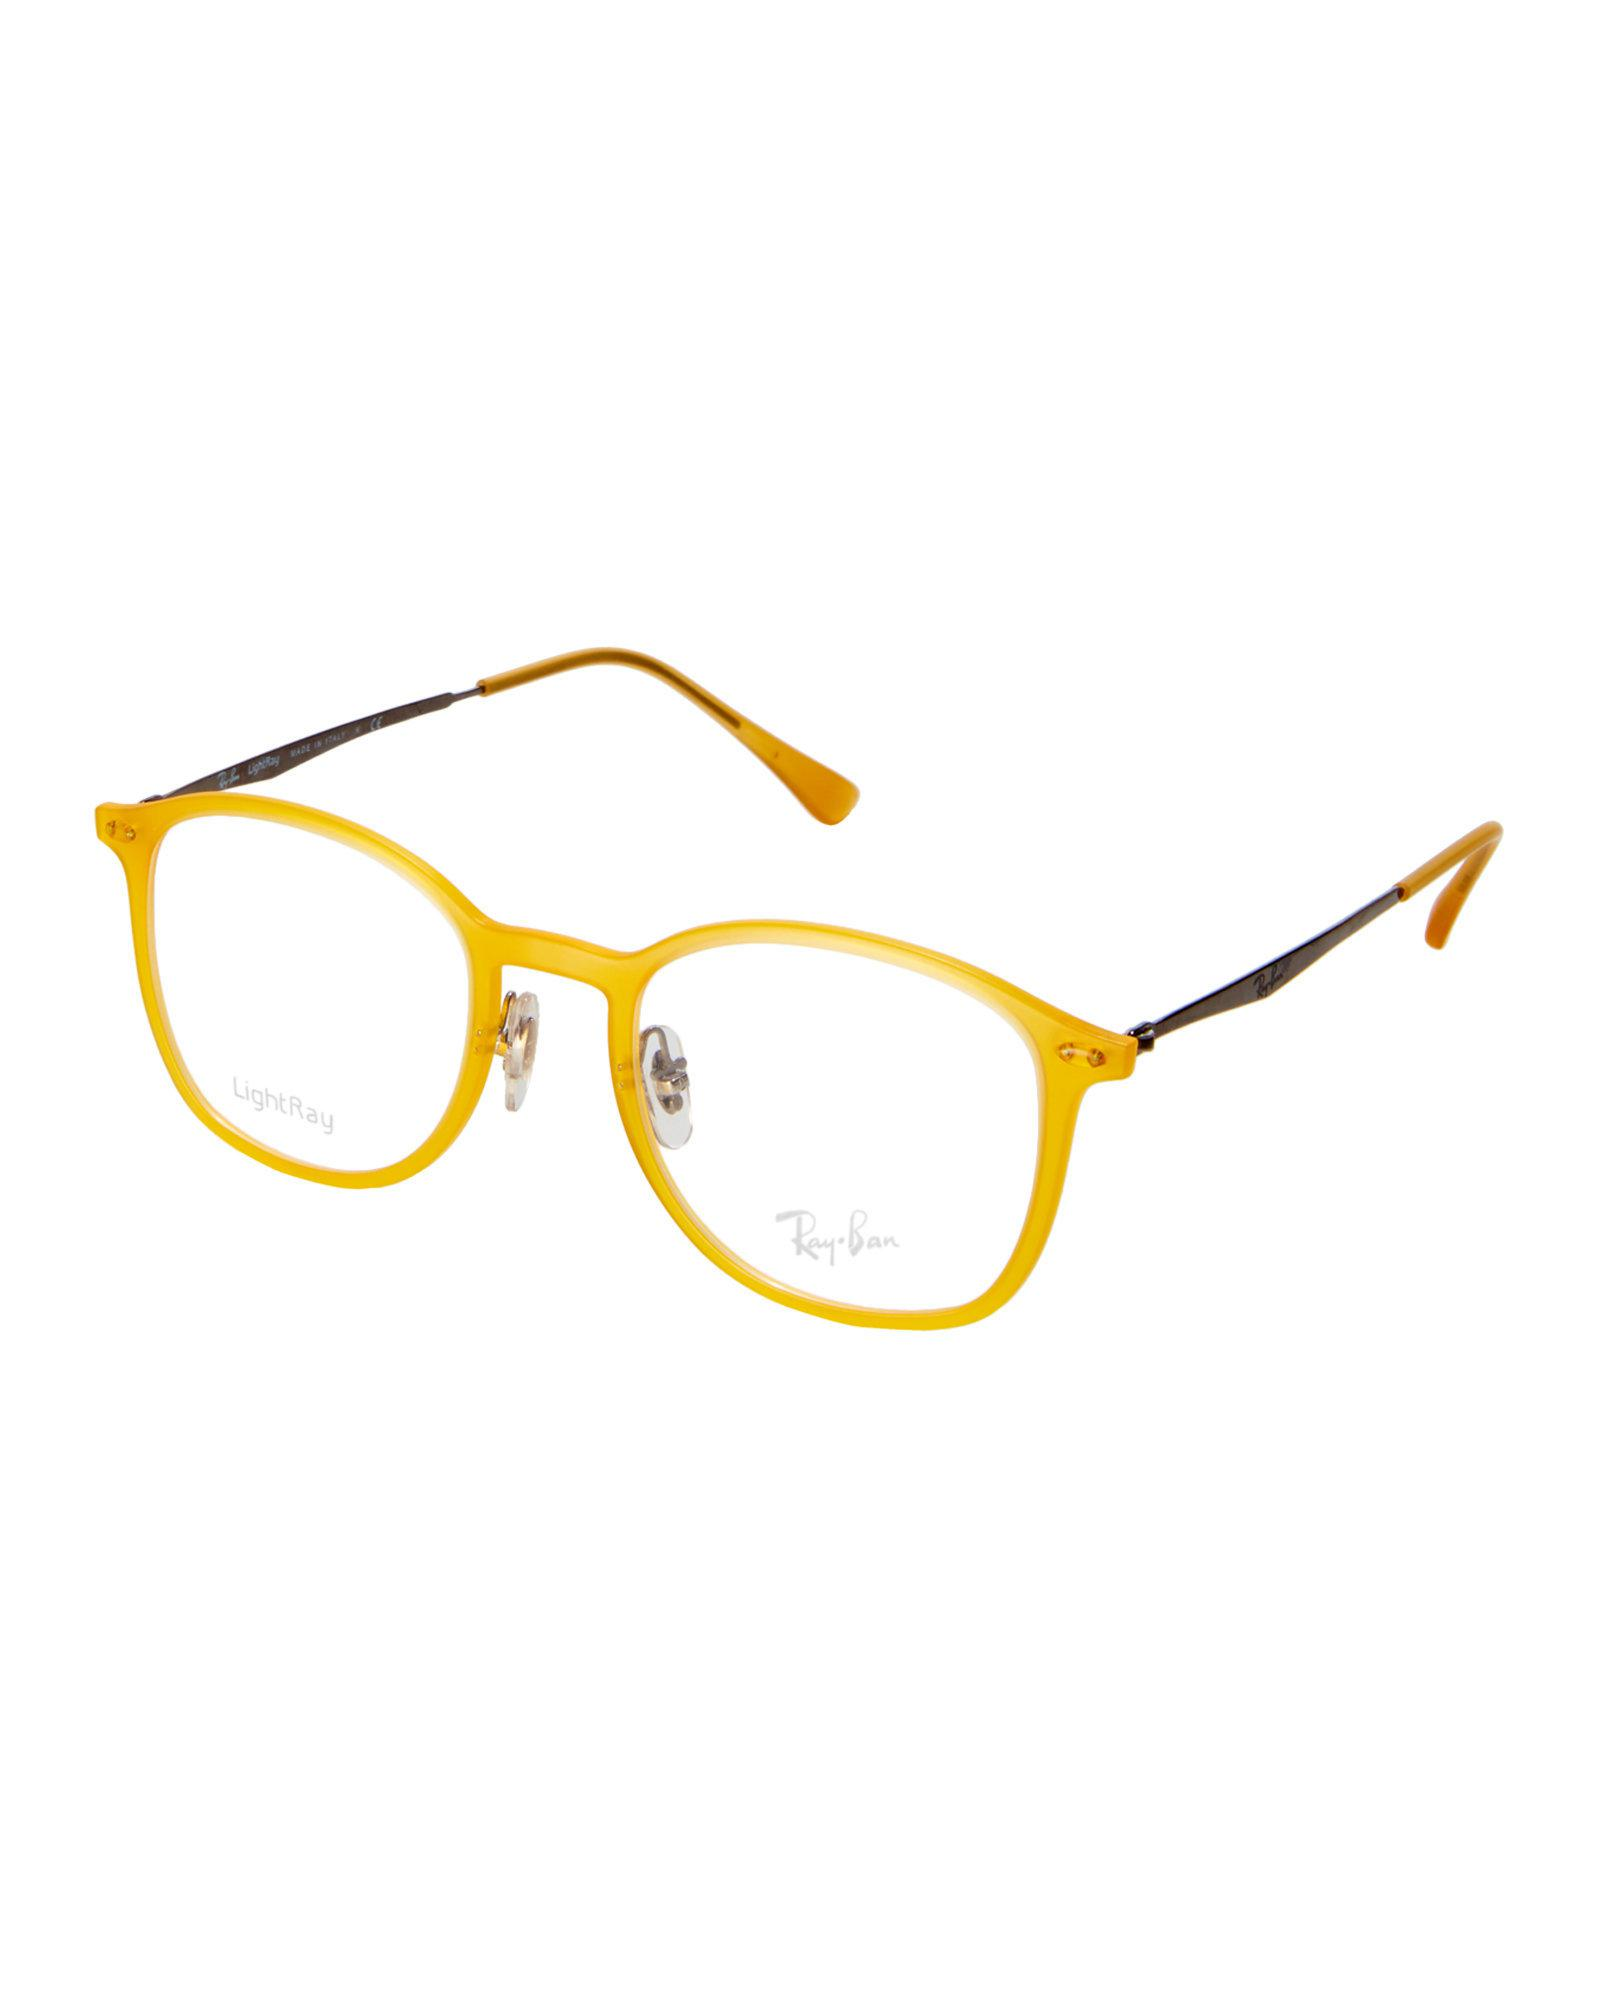 Lyst - Ray-Ban Rb7051 Yellow Round Frames